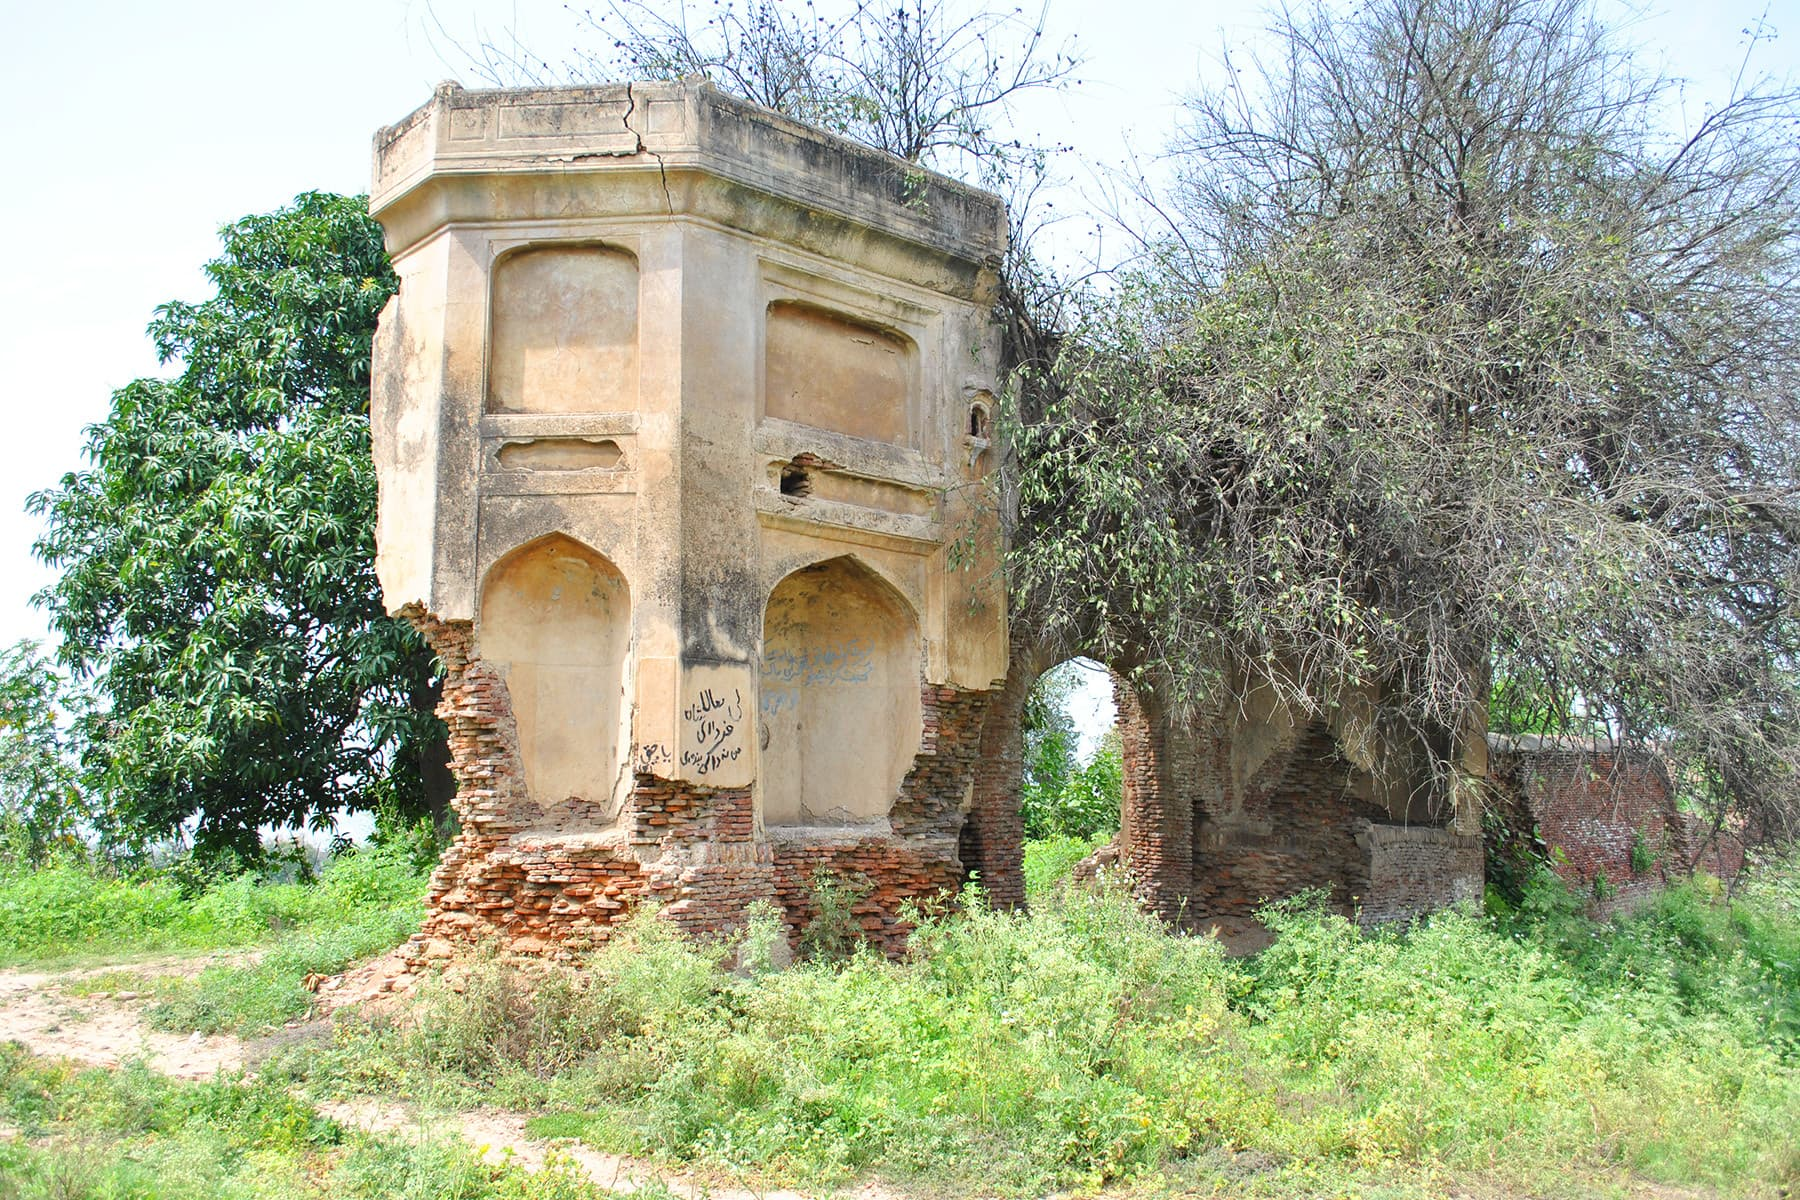 Ruins of a walled garden in south of Eminabad.